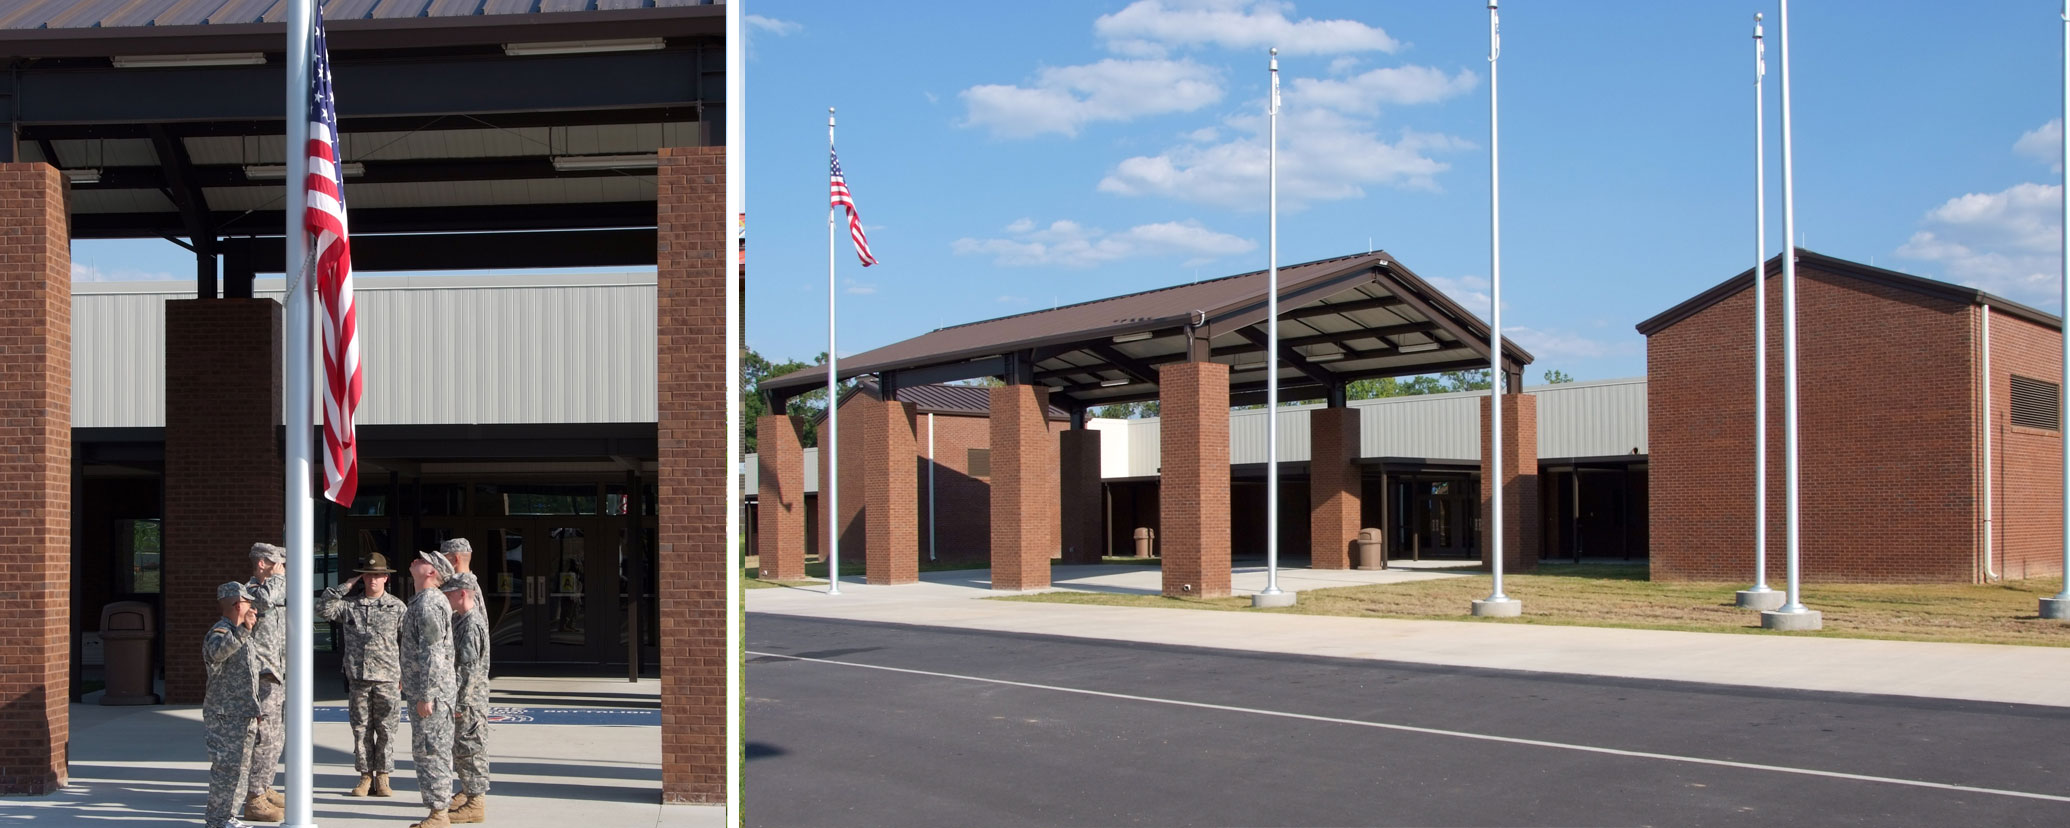 Caddell Construction Project - Soldier Reception & Processing Center, Fort Benning, GA